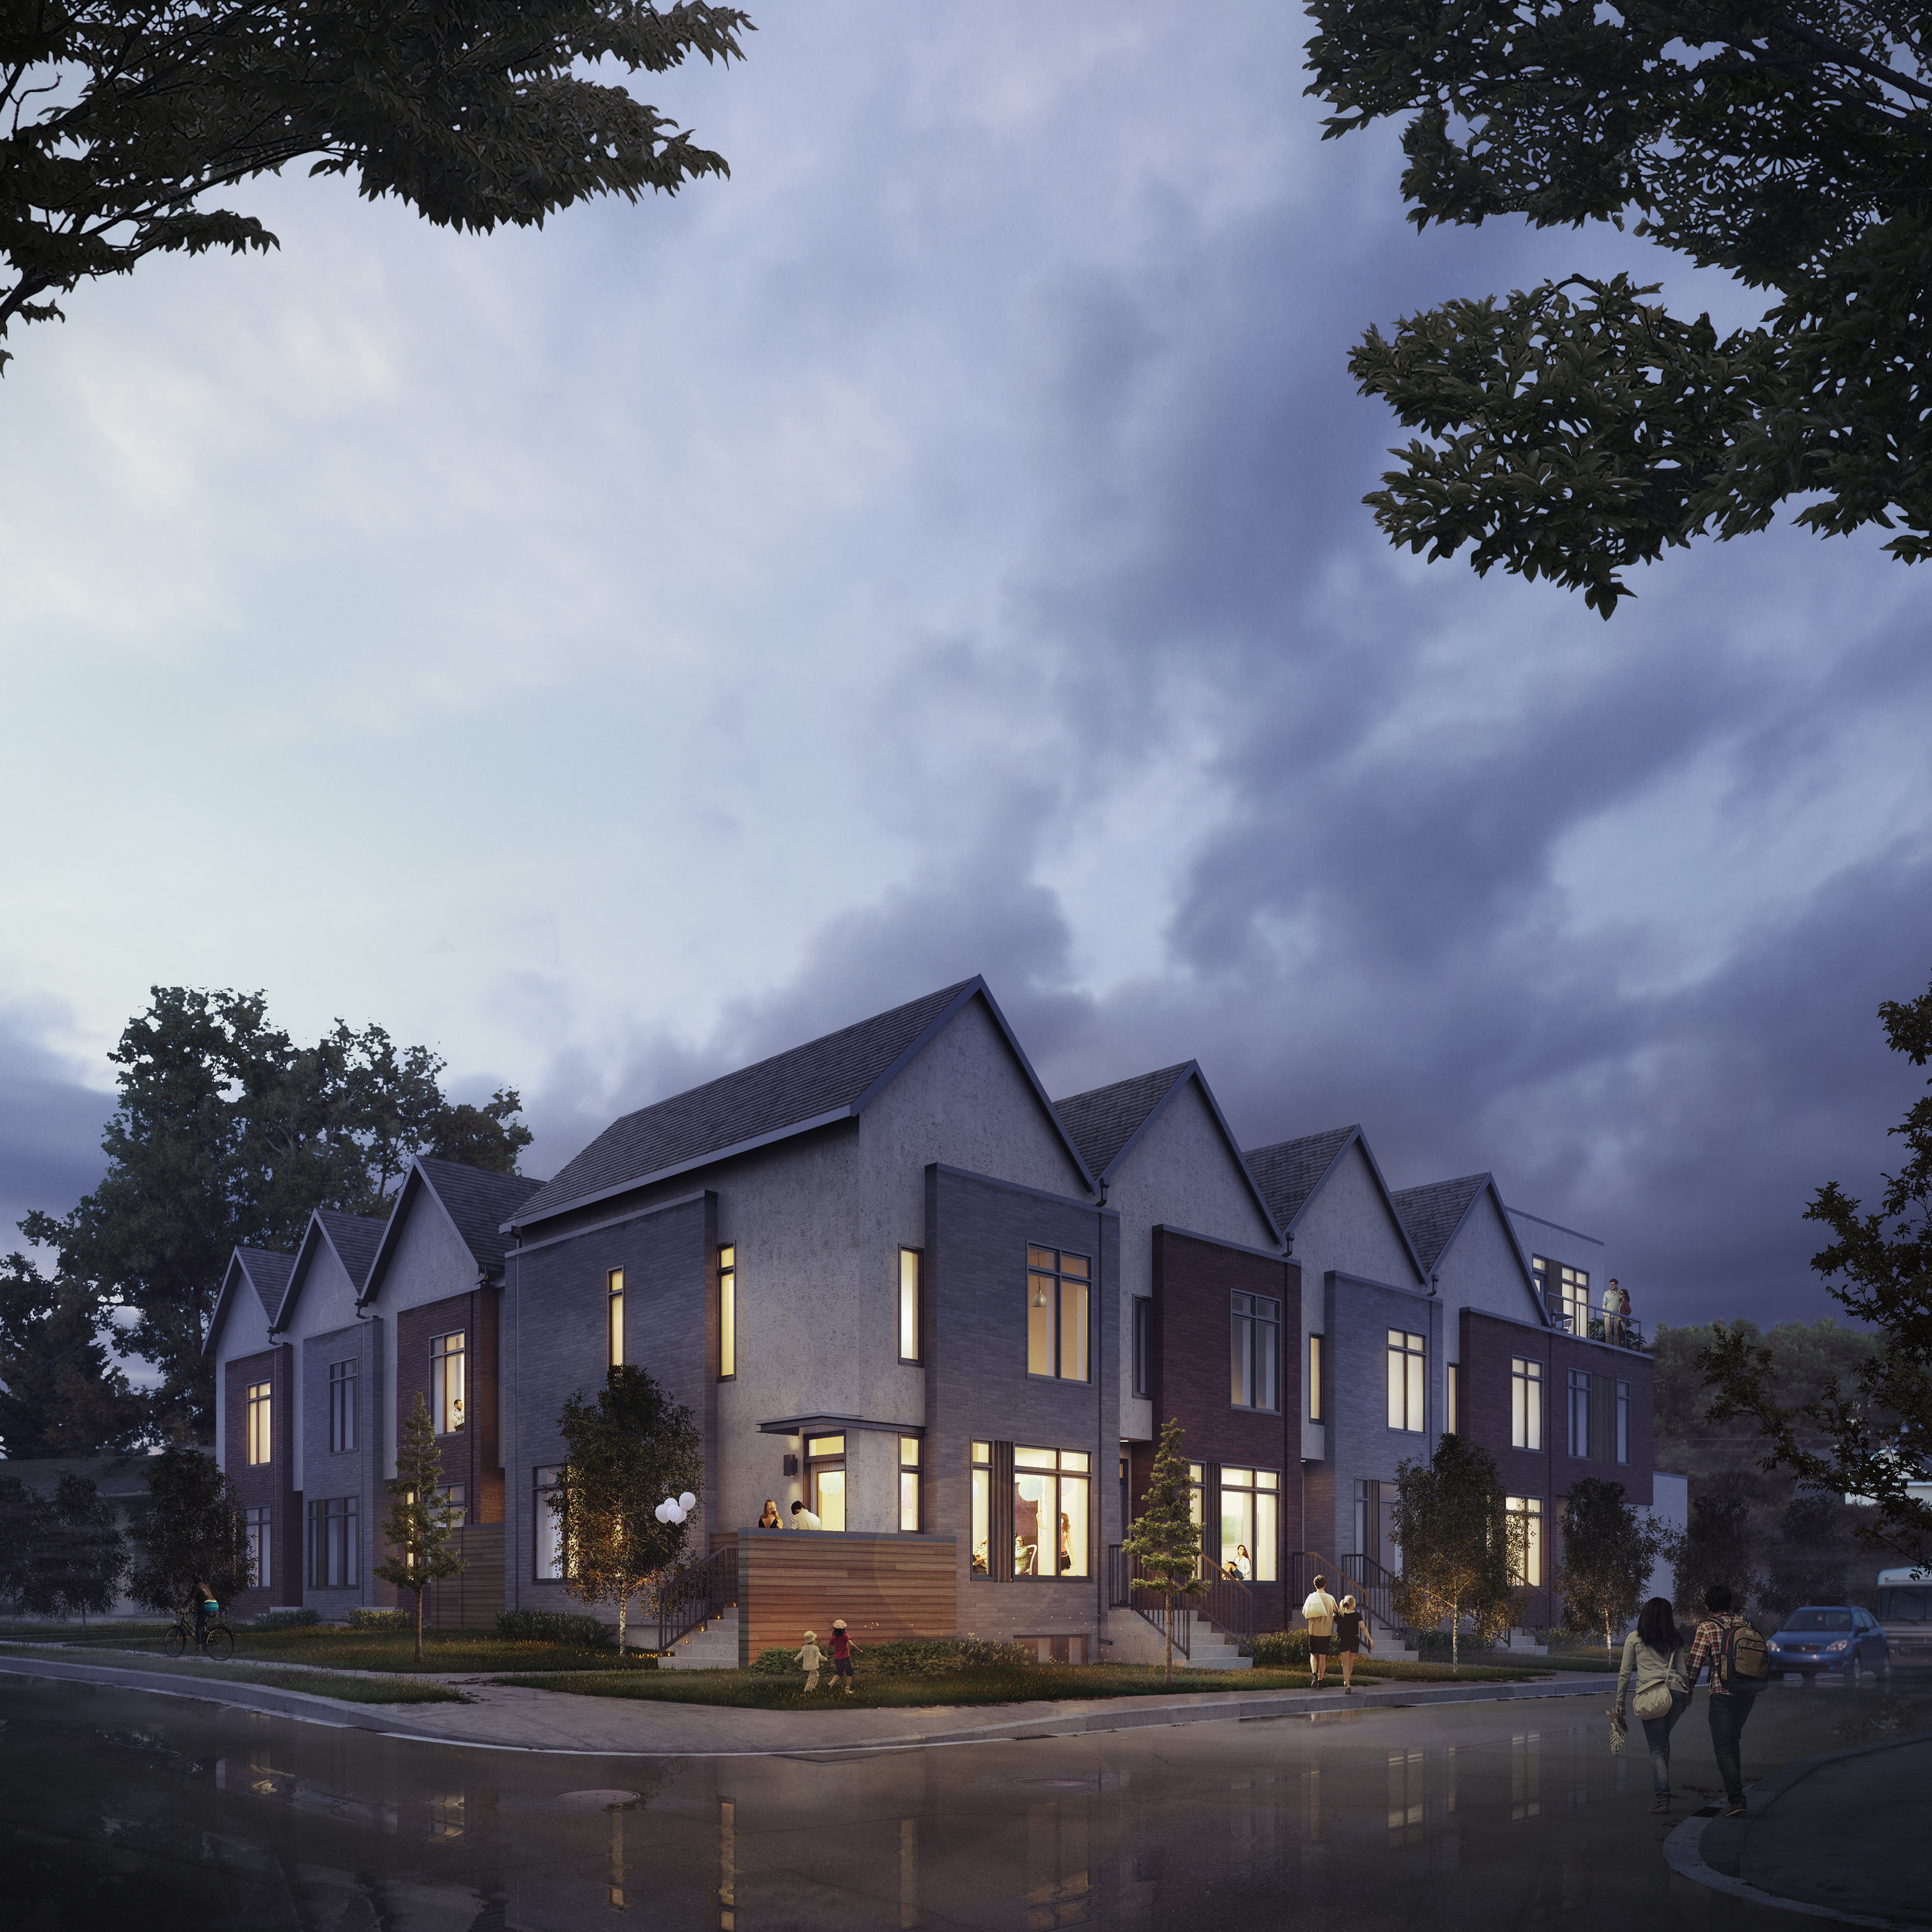 The award-winning eightplex in Mount Pleasant designed by Gravity Architecture